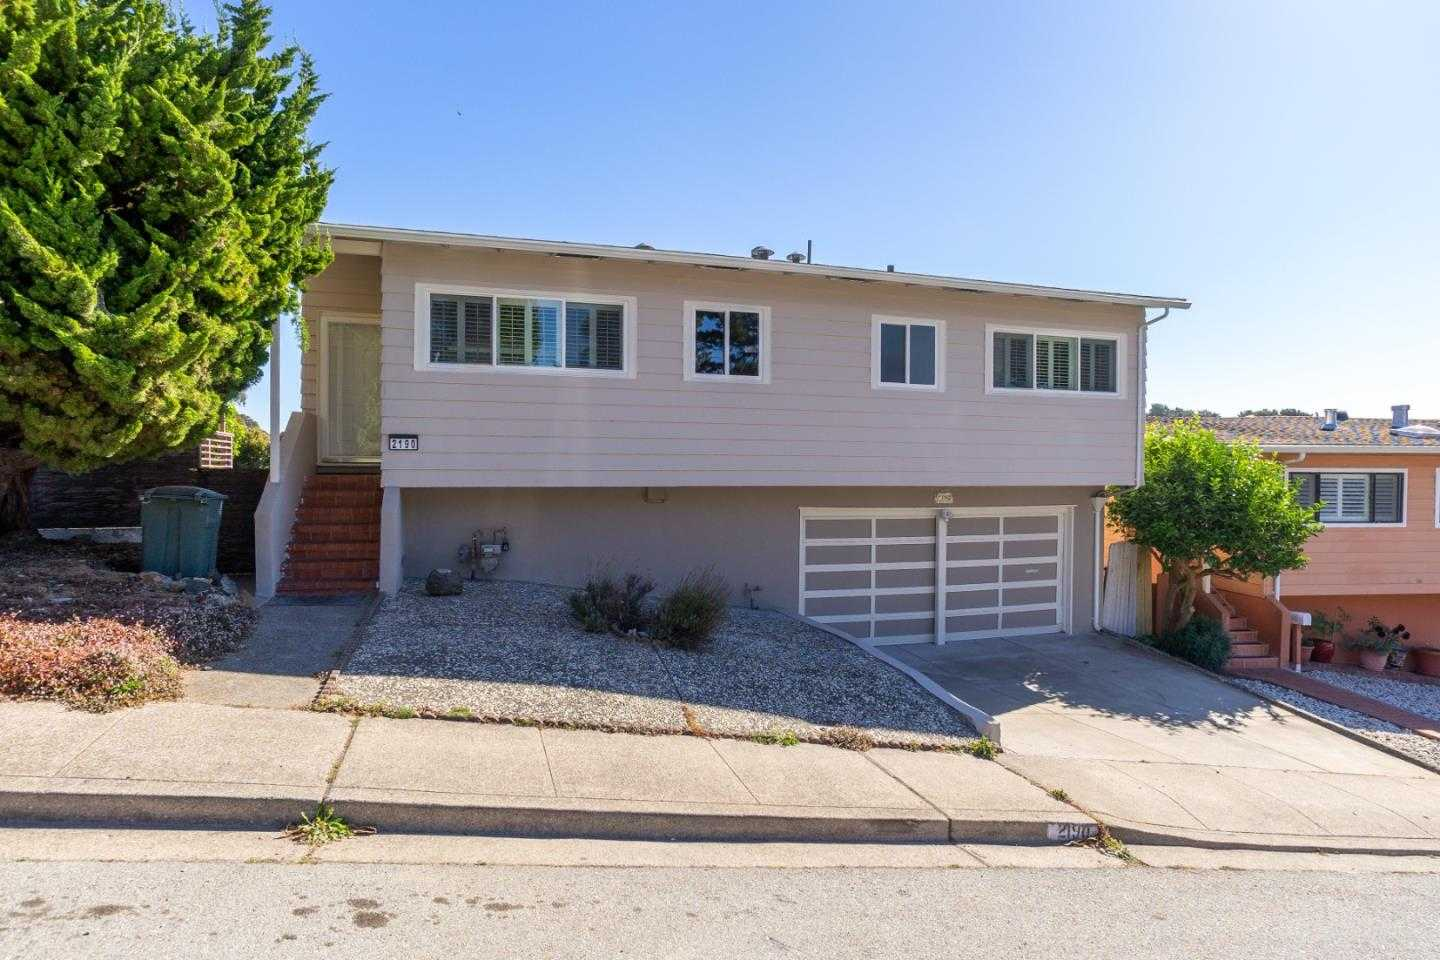 $1,190,000 - 3Br/2Ba -  for Sale in San Bruno